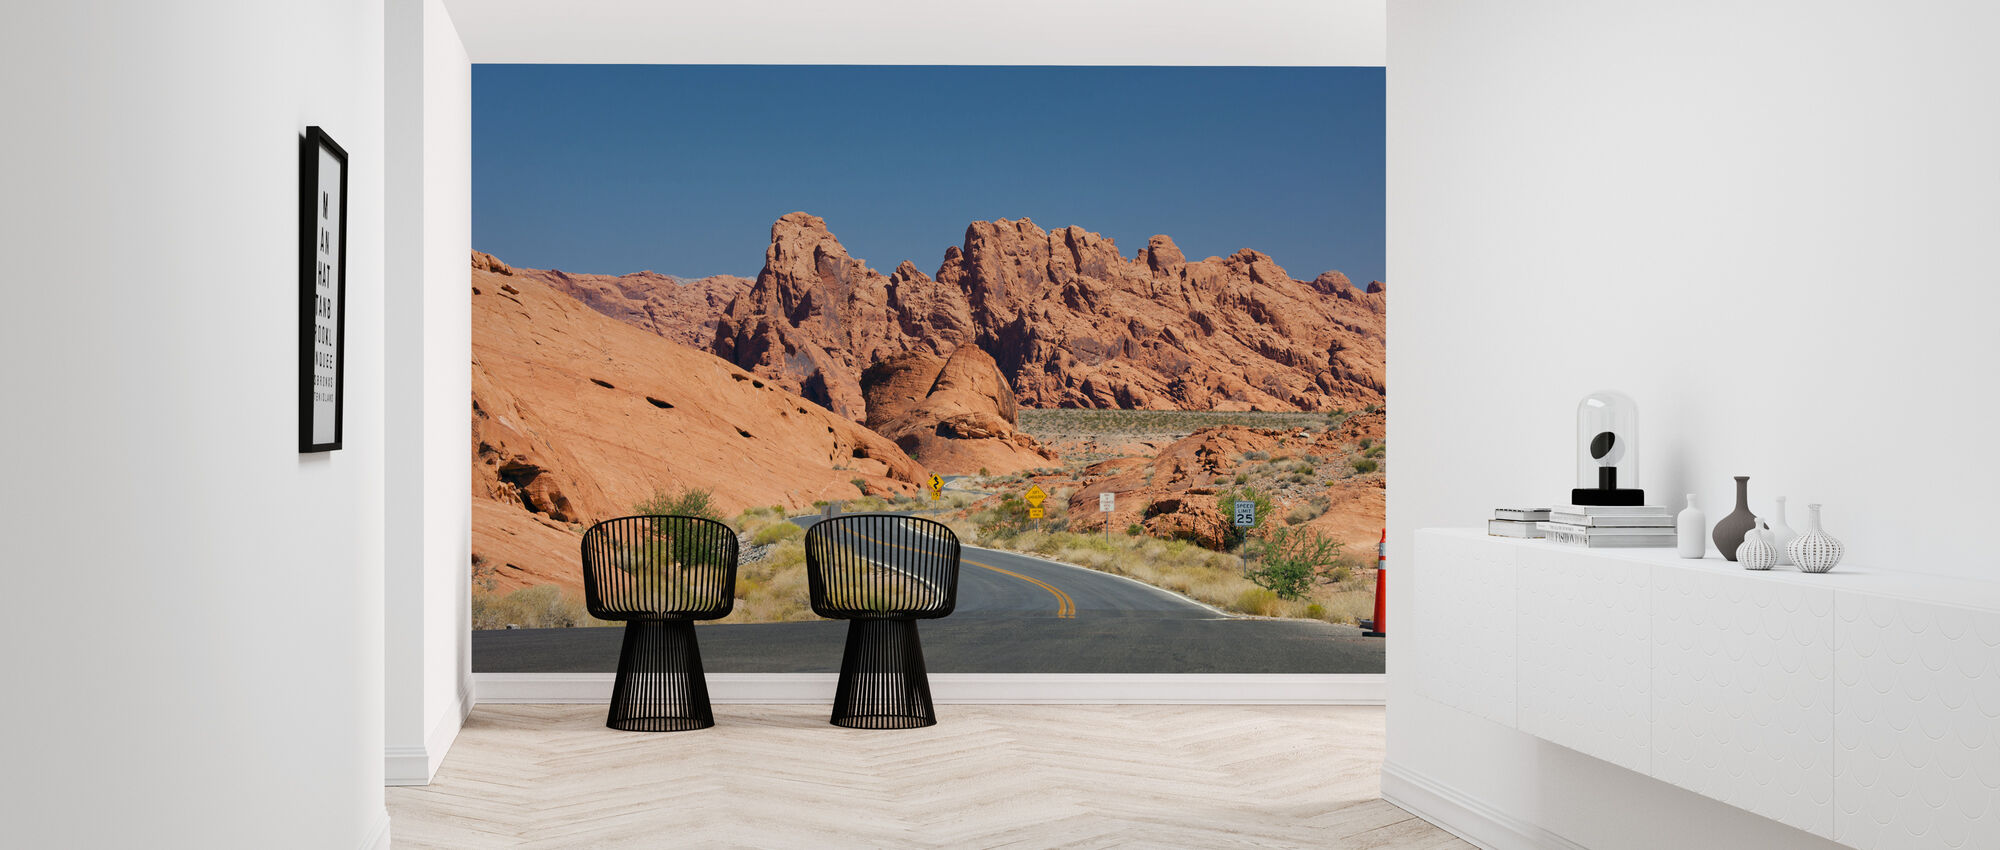 Valley of Fire in Nevada, USA - Wallpaper - Hallway